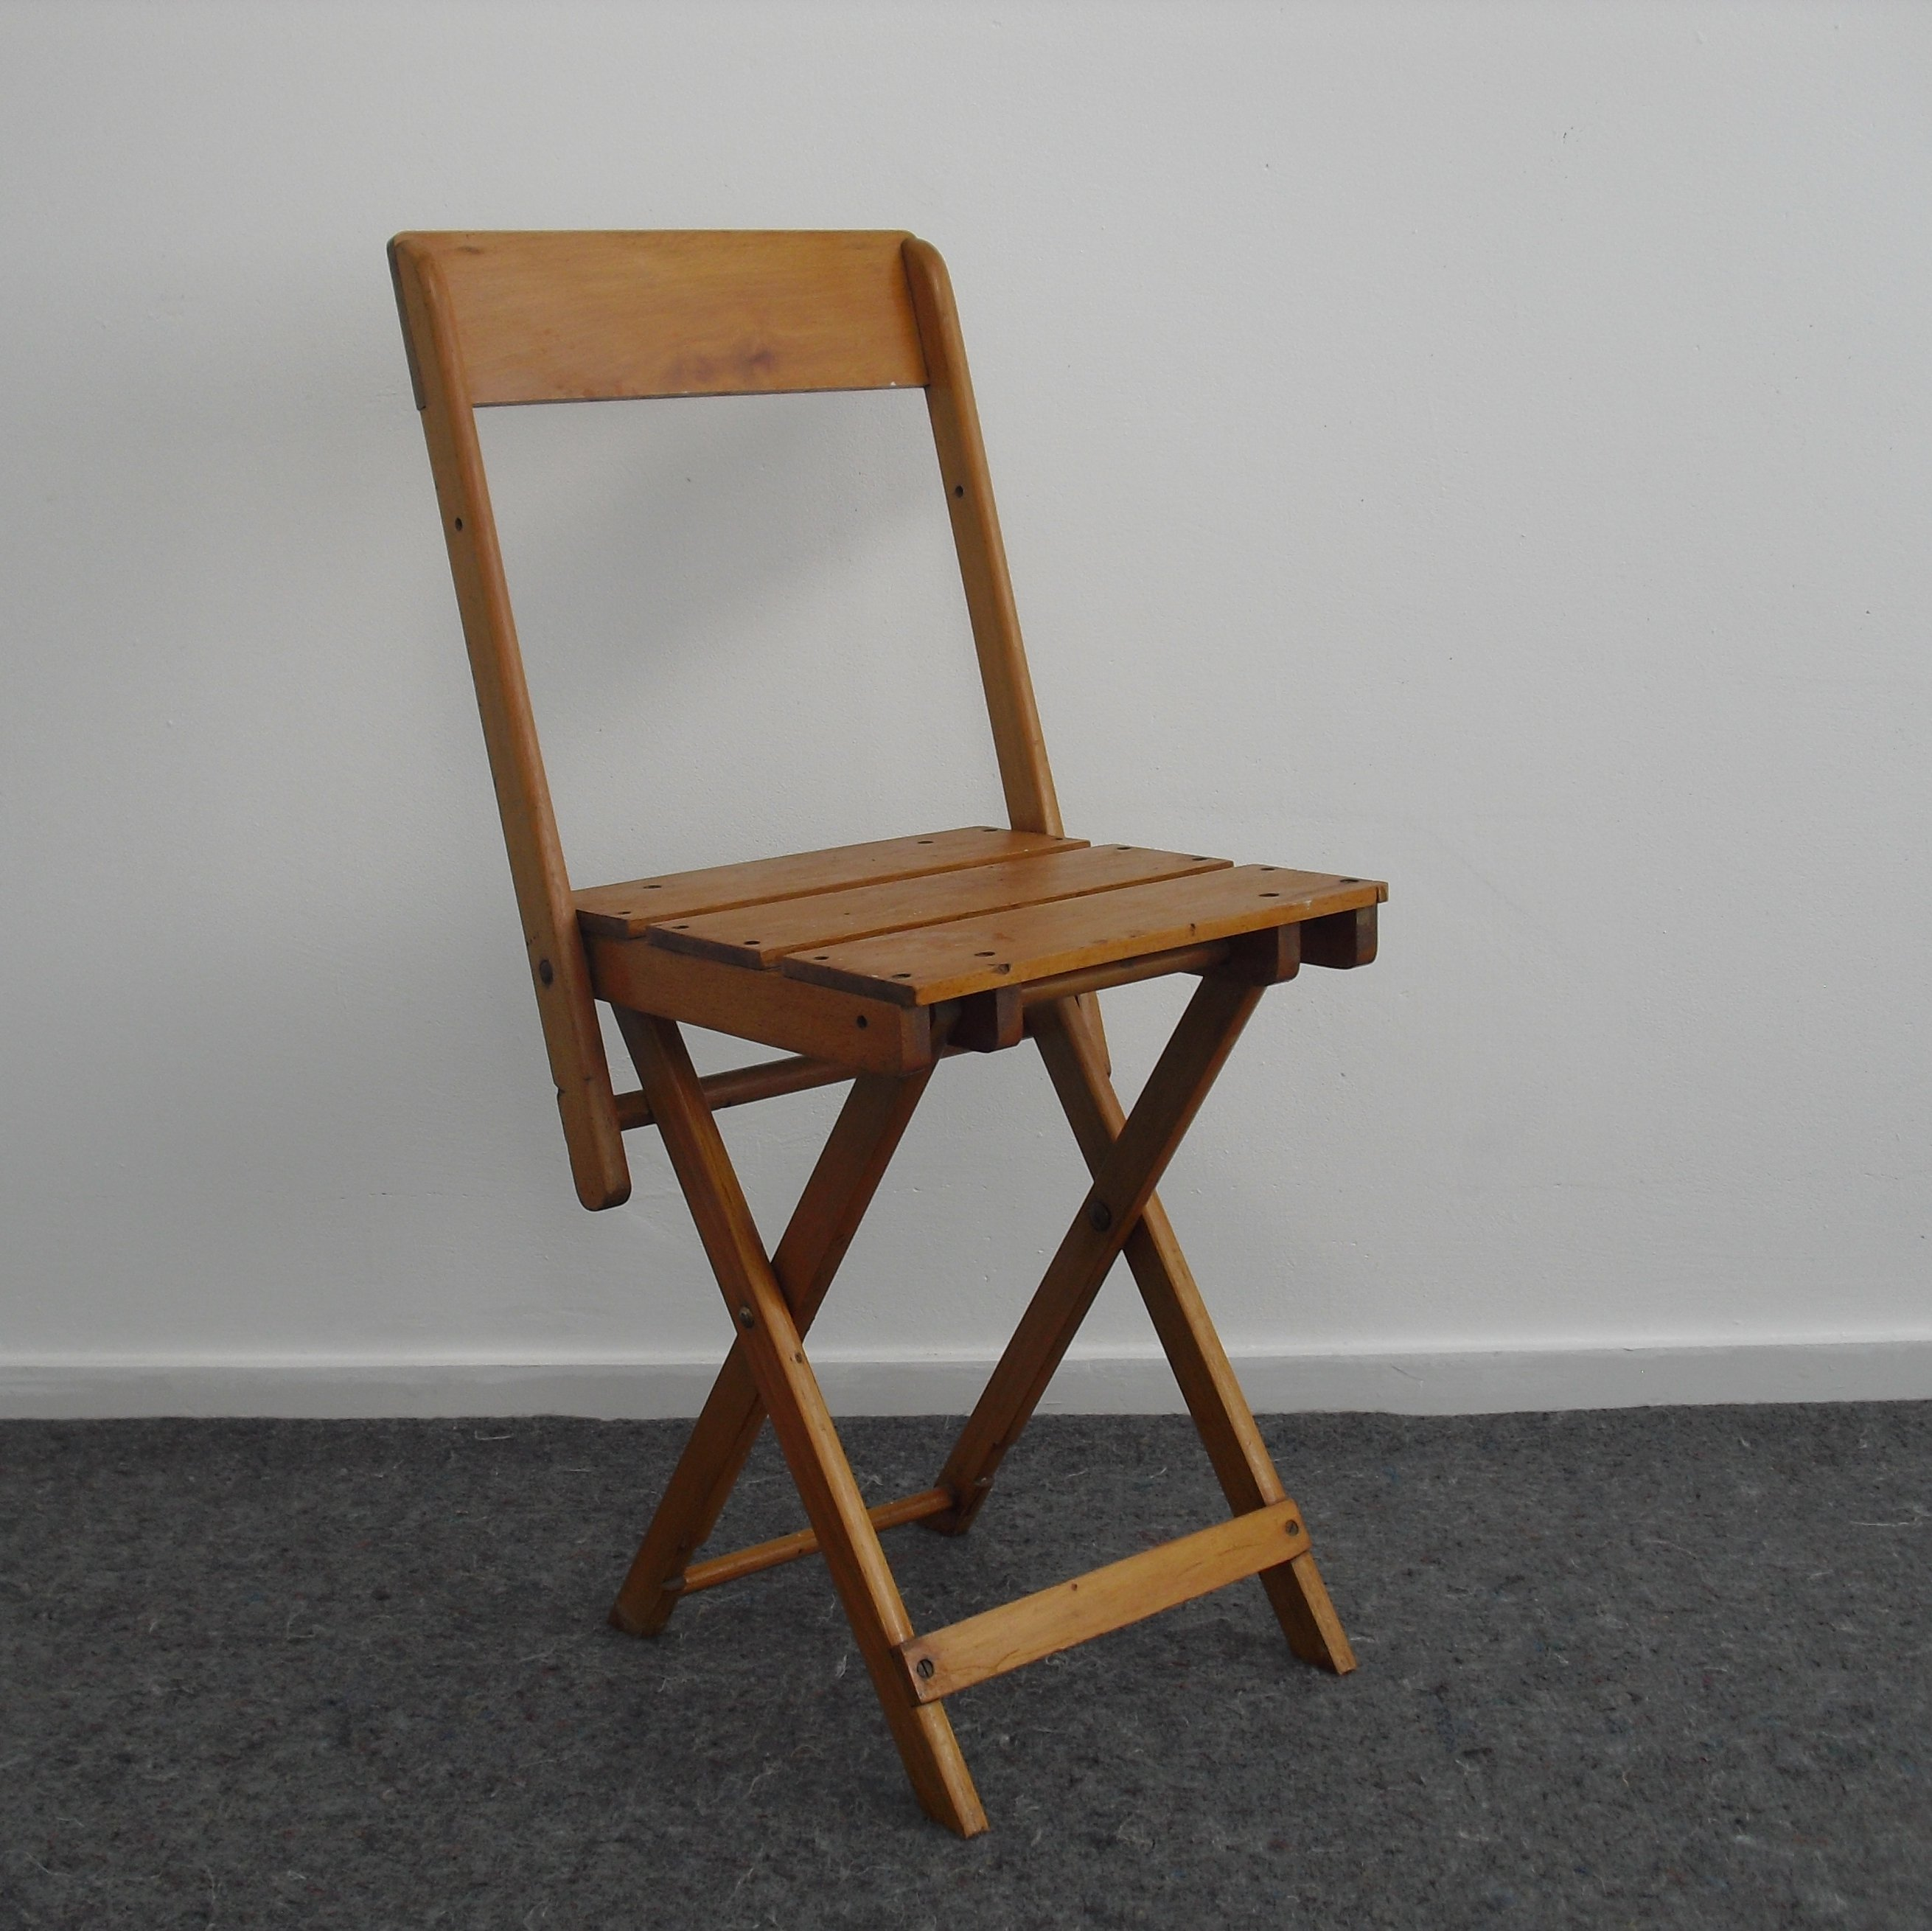 - Vintage Children's Folding Chair, Stool & Table In One By E. A.